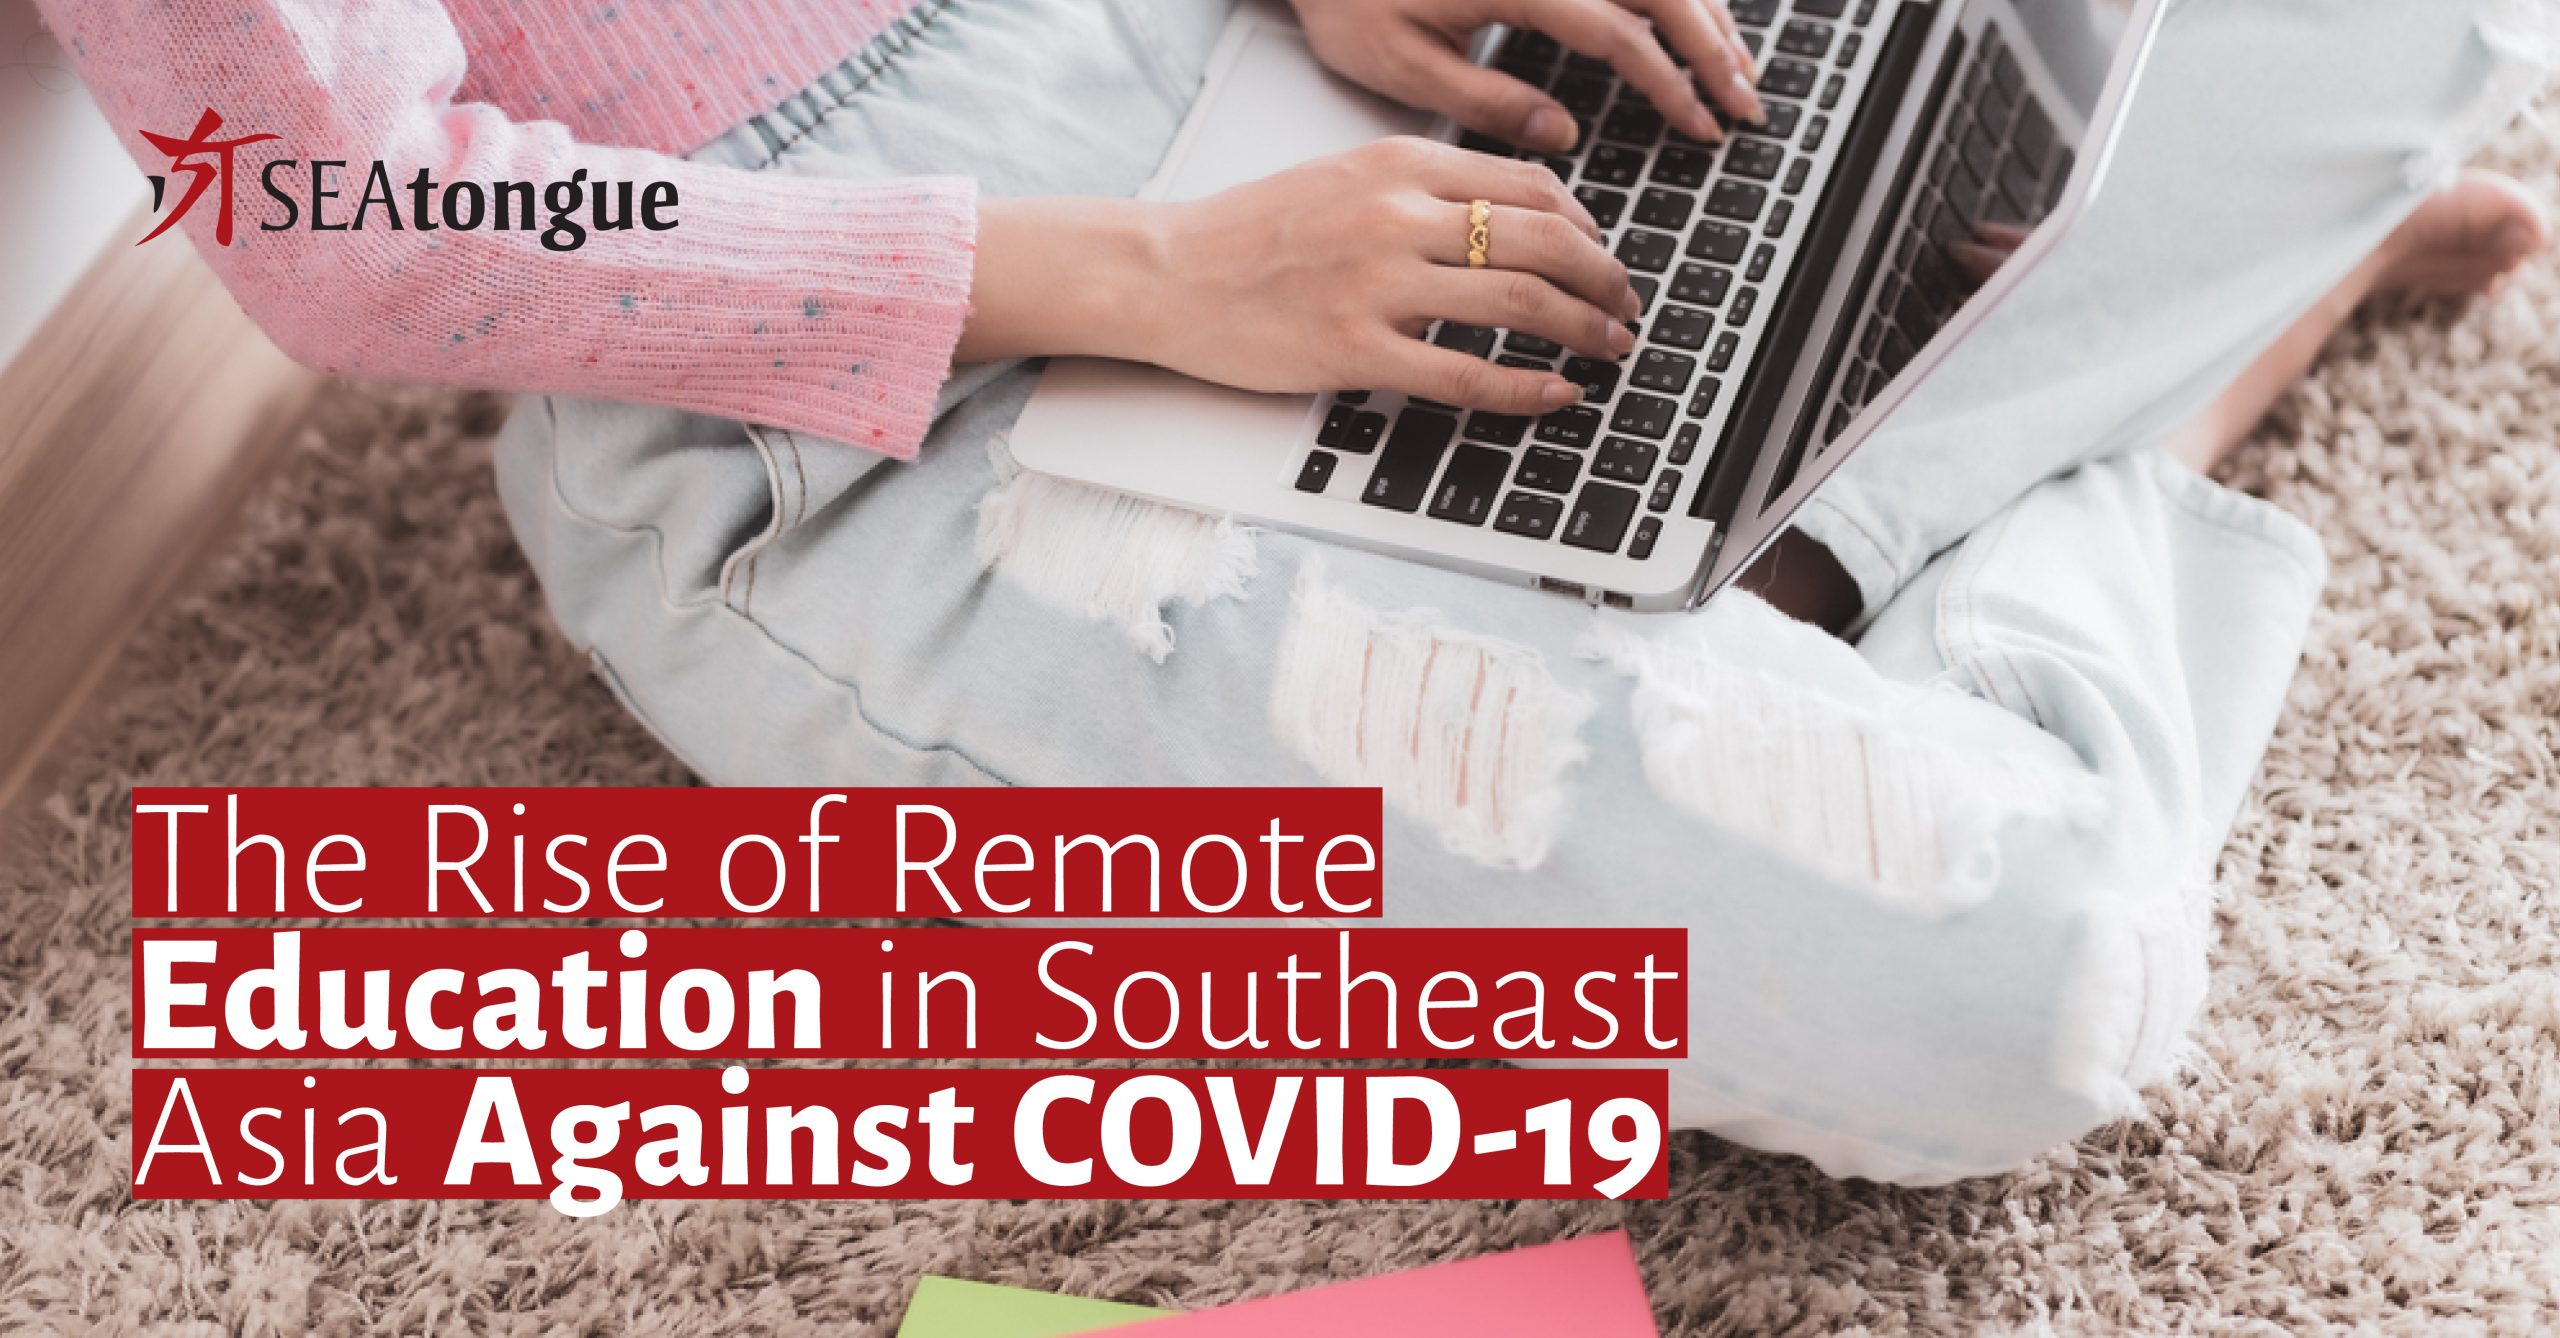 The Rise of Remote Education in Southeast Asia Against COVID-19